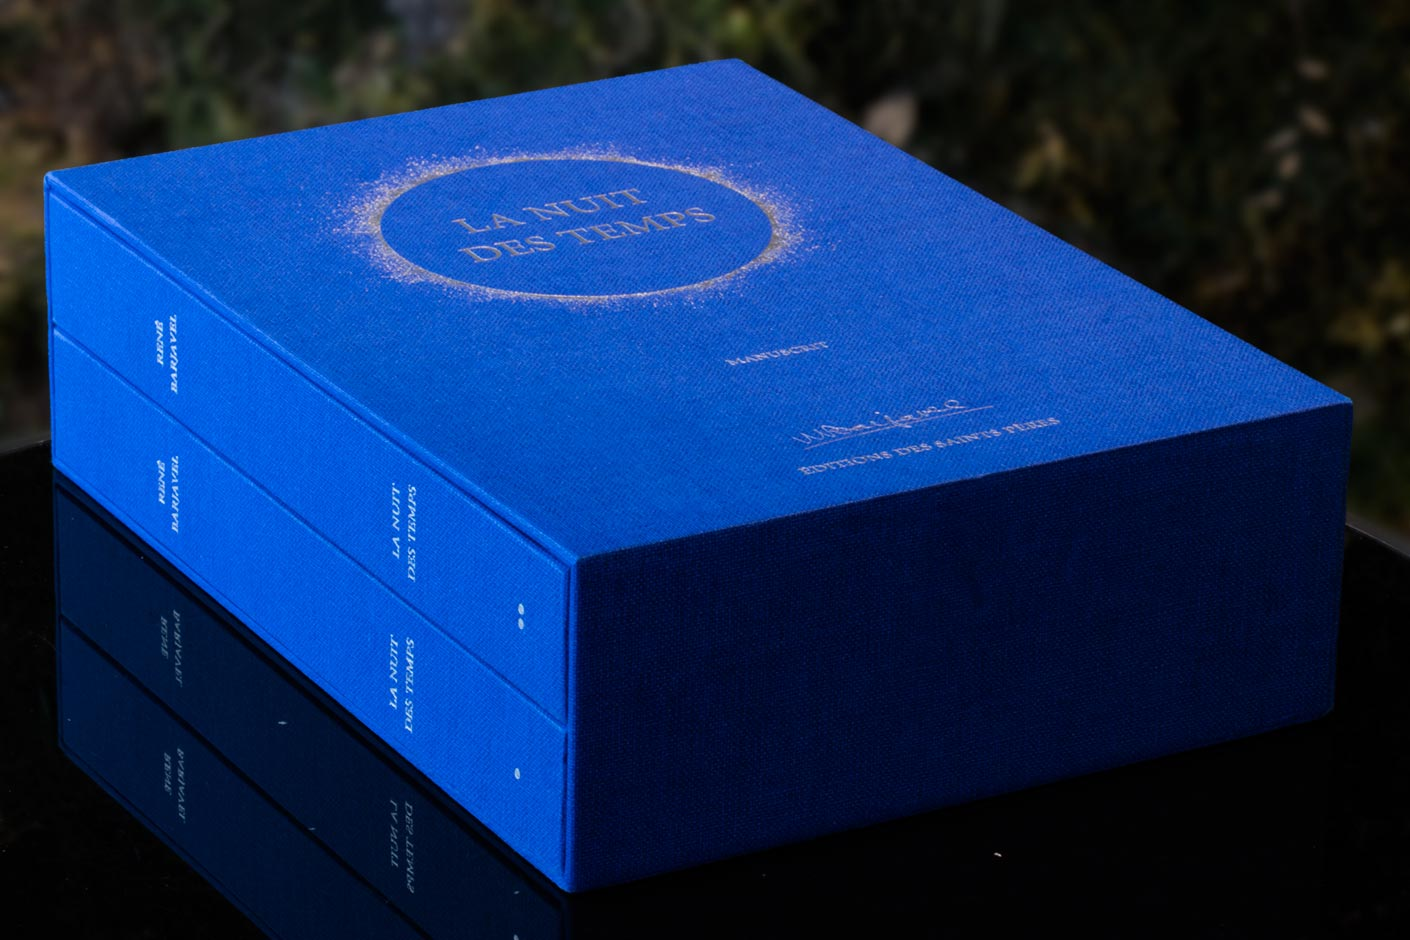 Coffret Barjavel Editions des Saints Pères